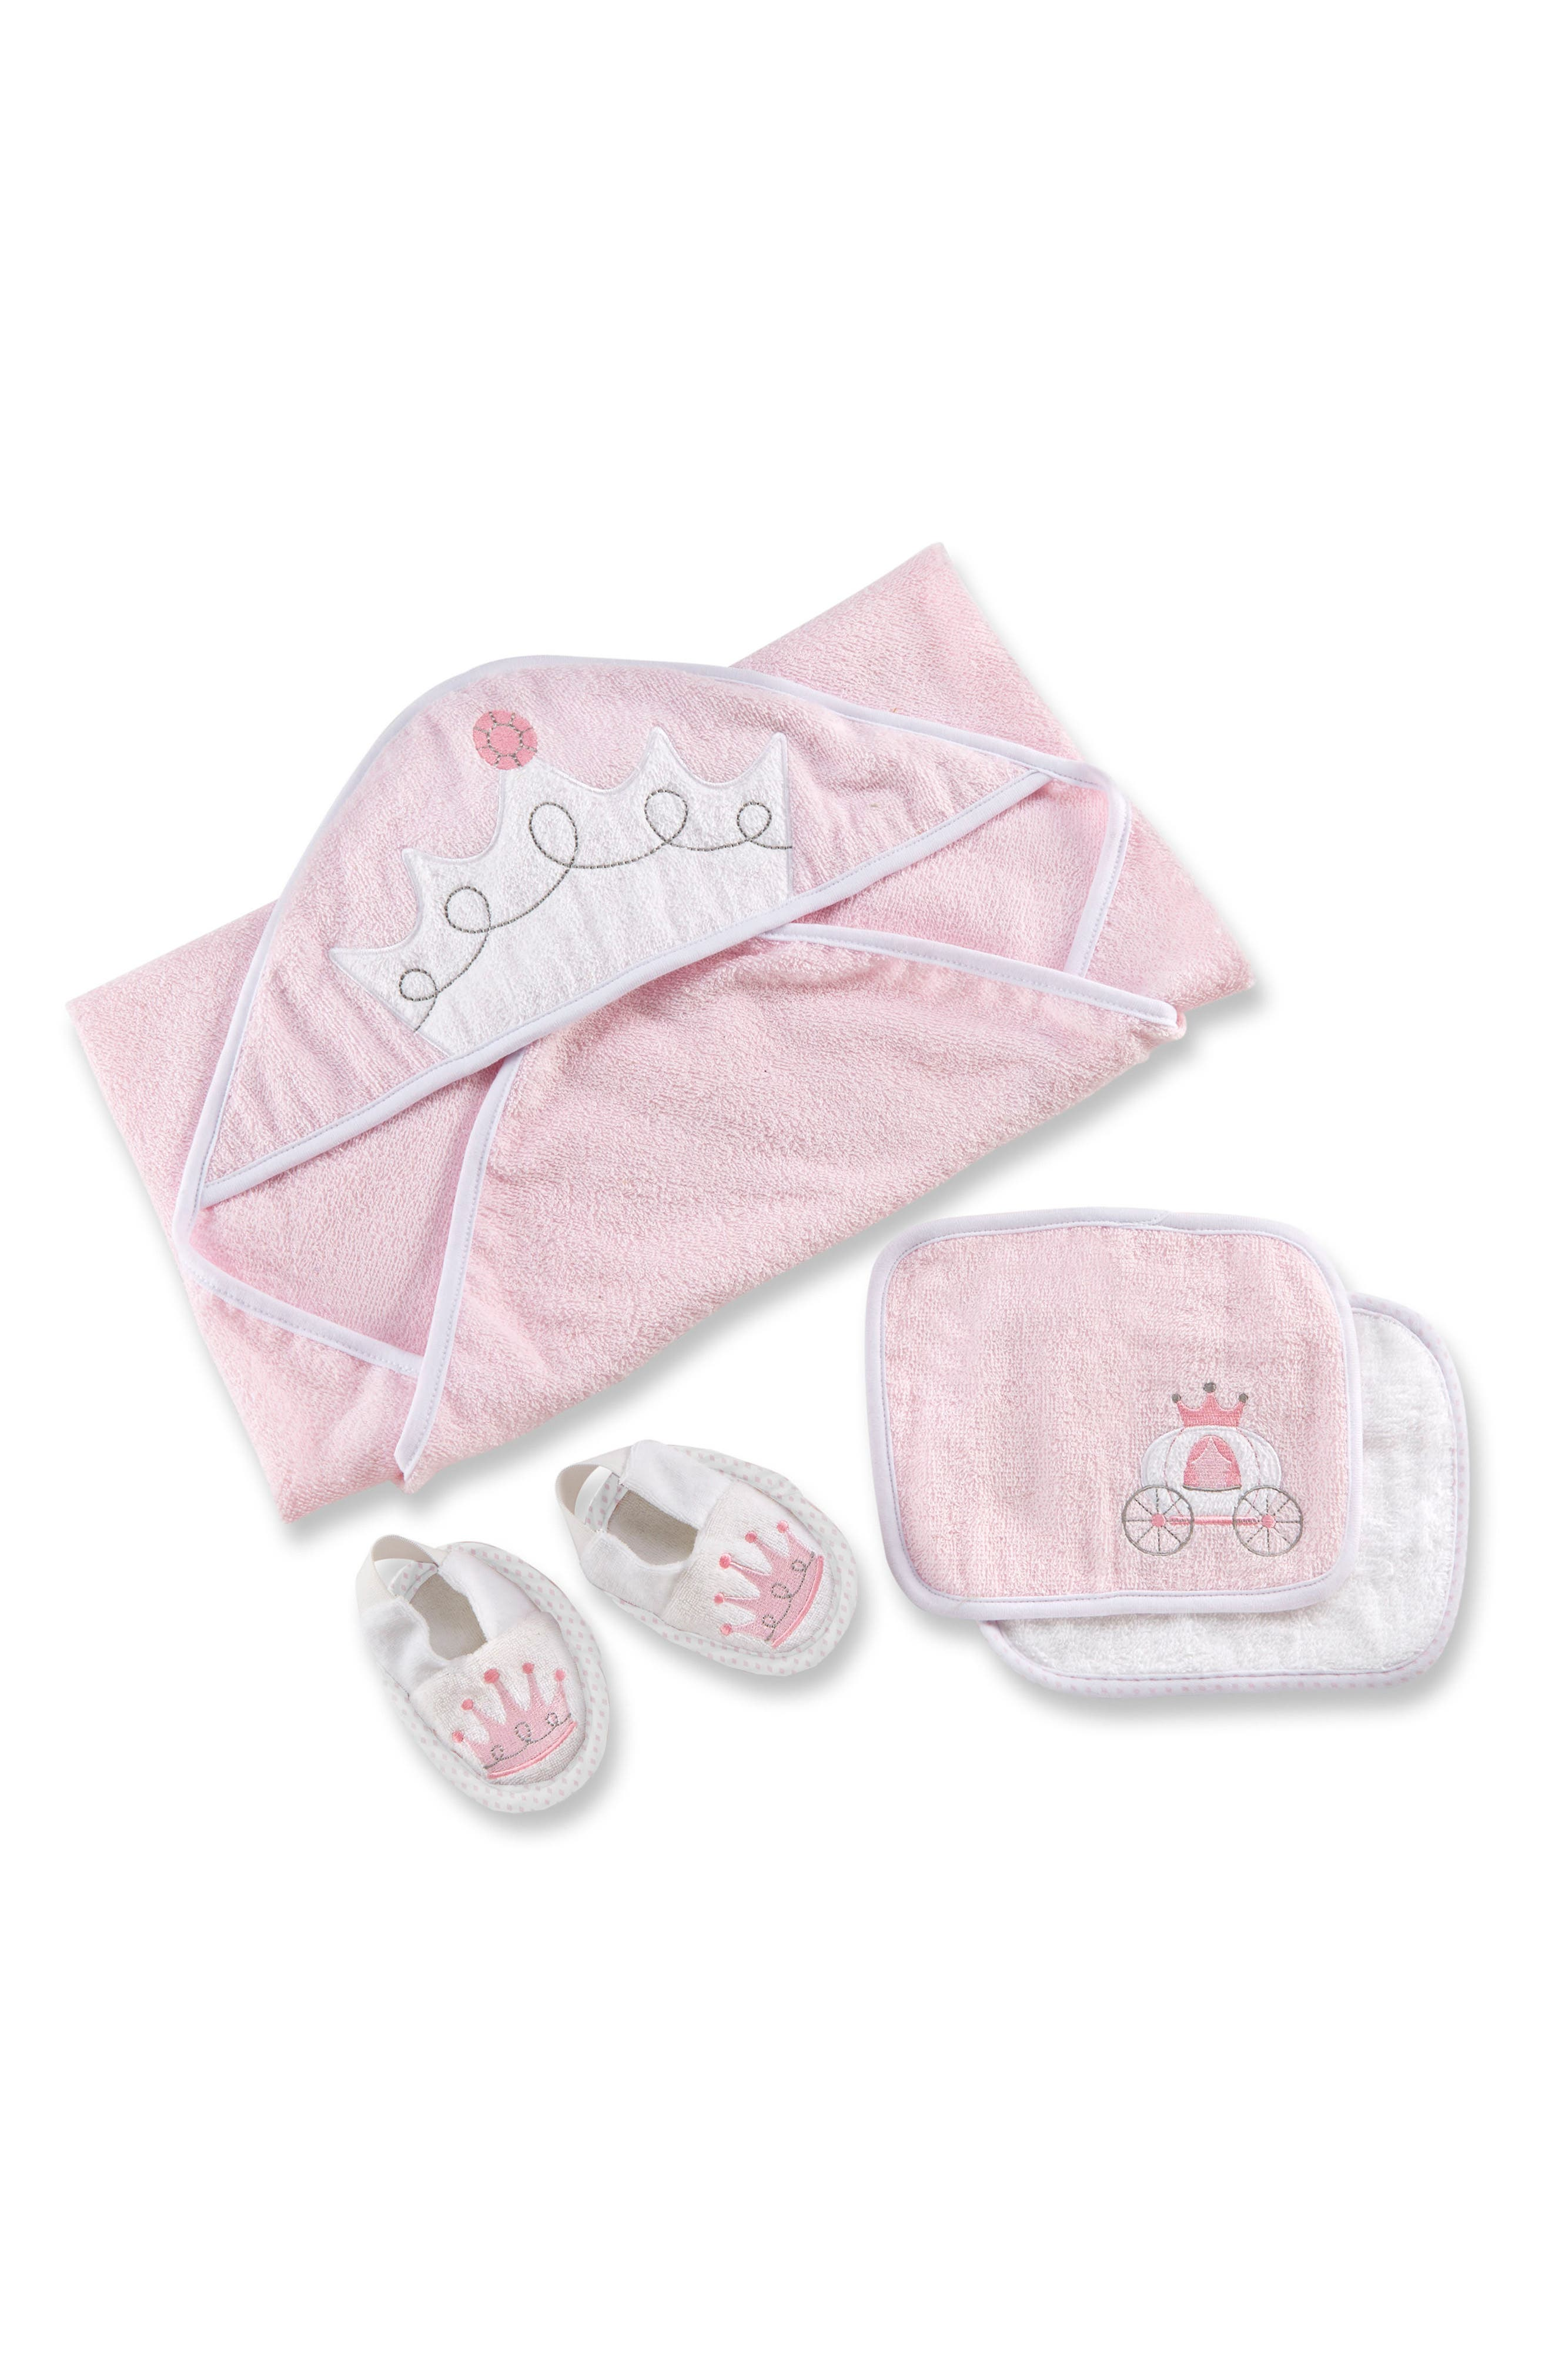 Alternate Image 1 Selected - Baby Aspen Little Princess 4-Piece Bath Set (Baby Girls)